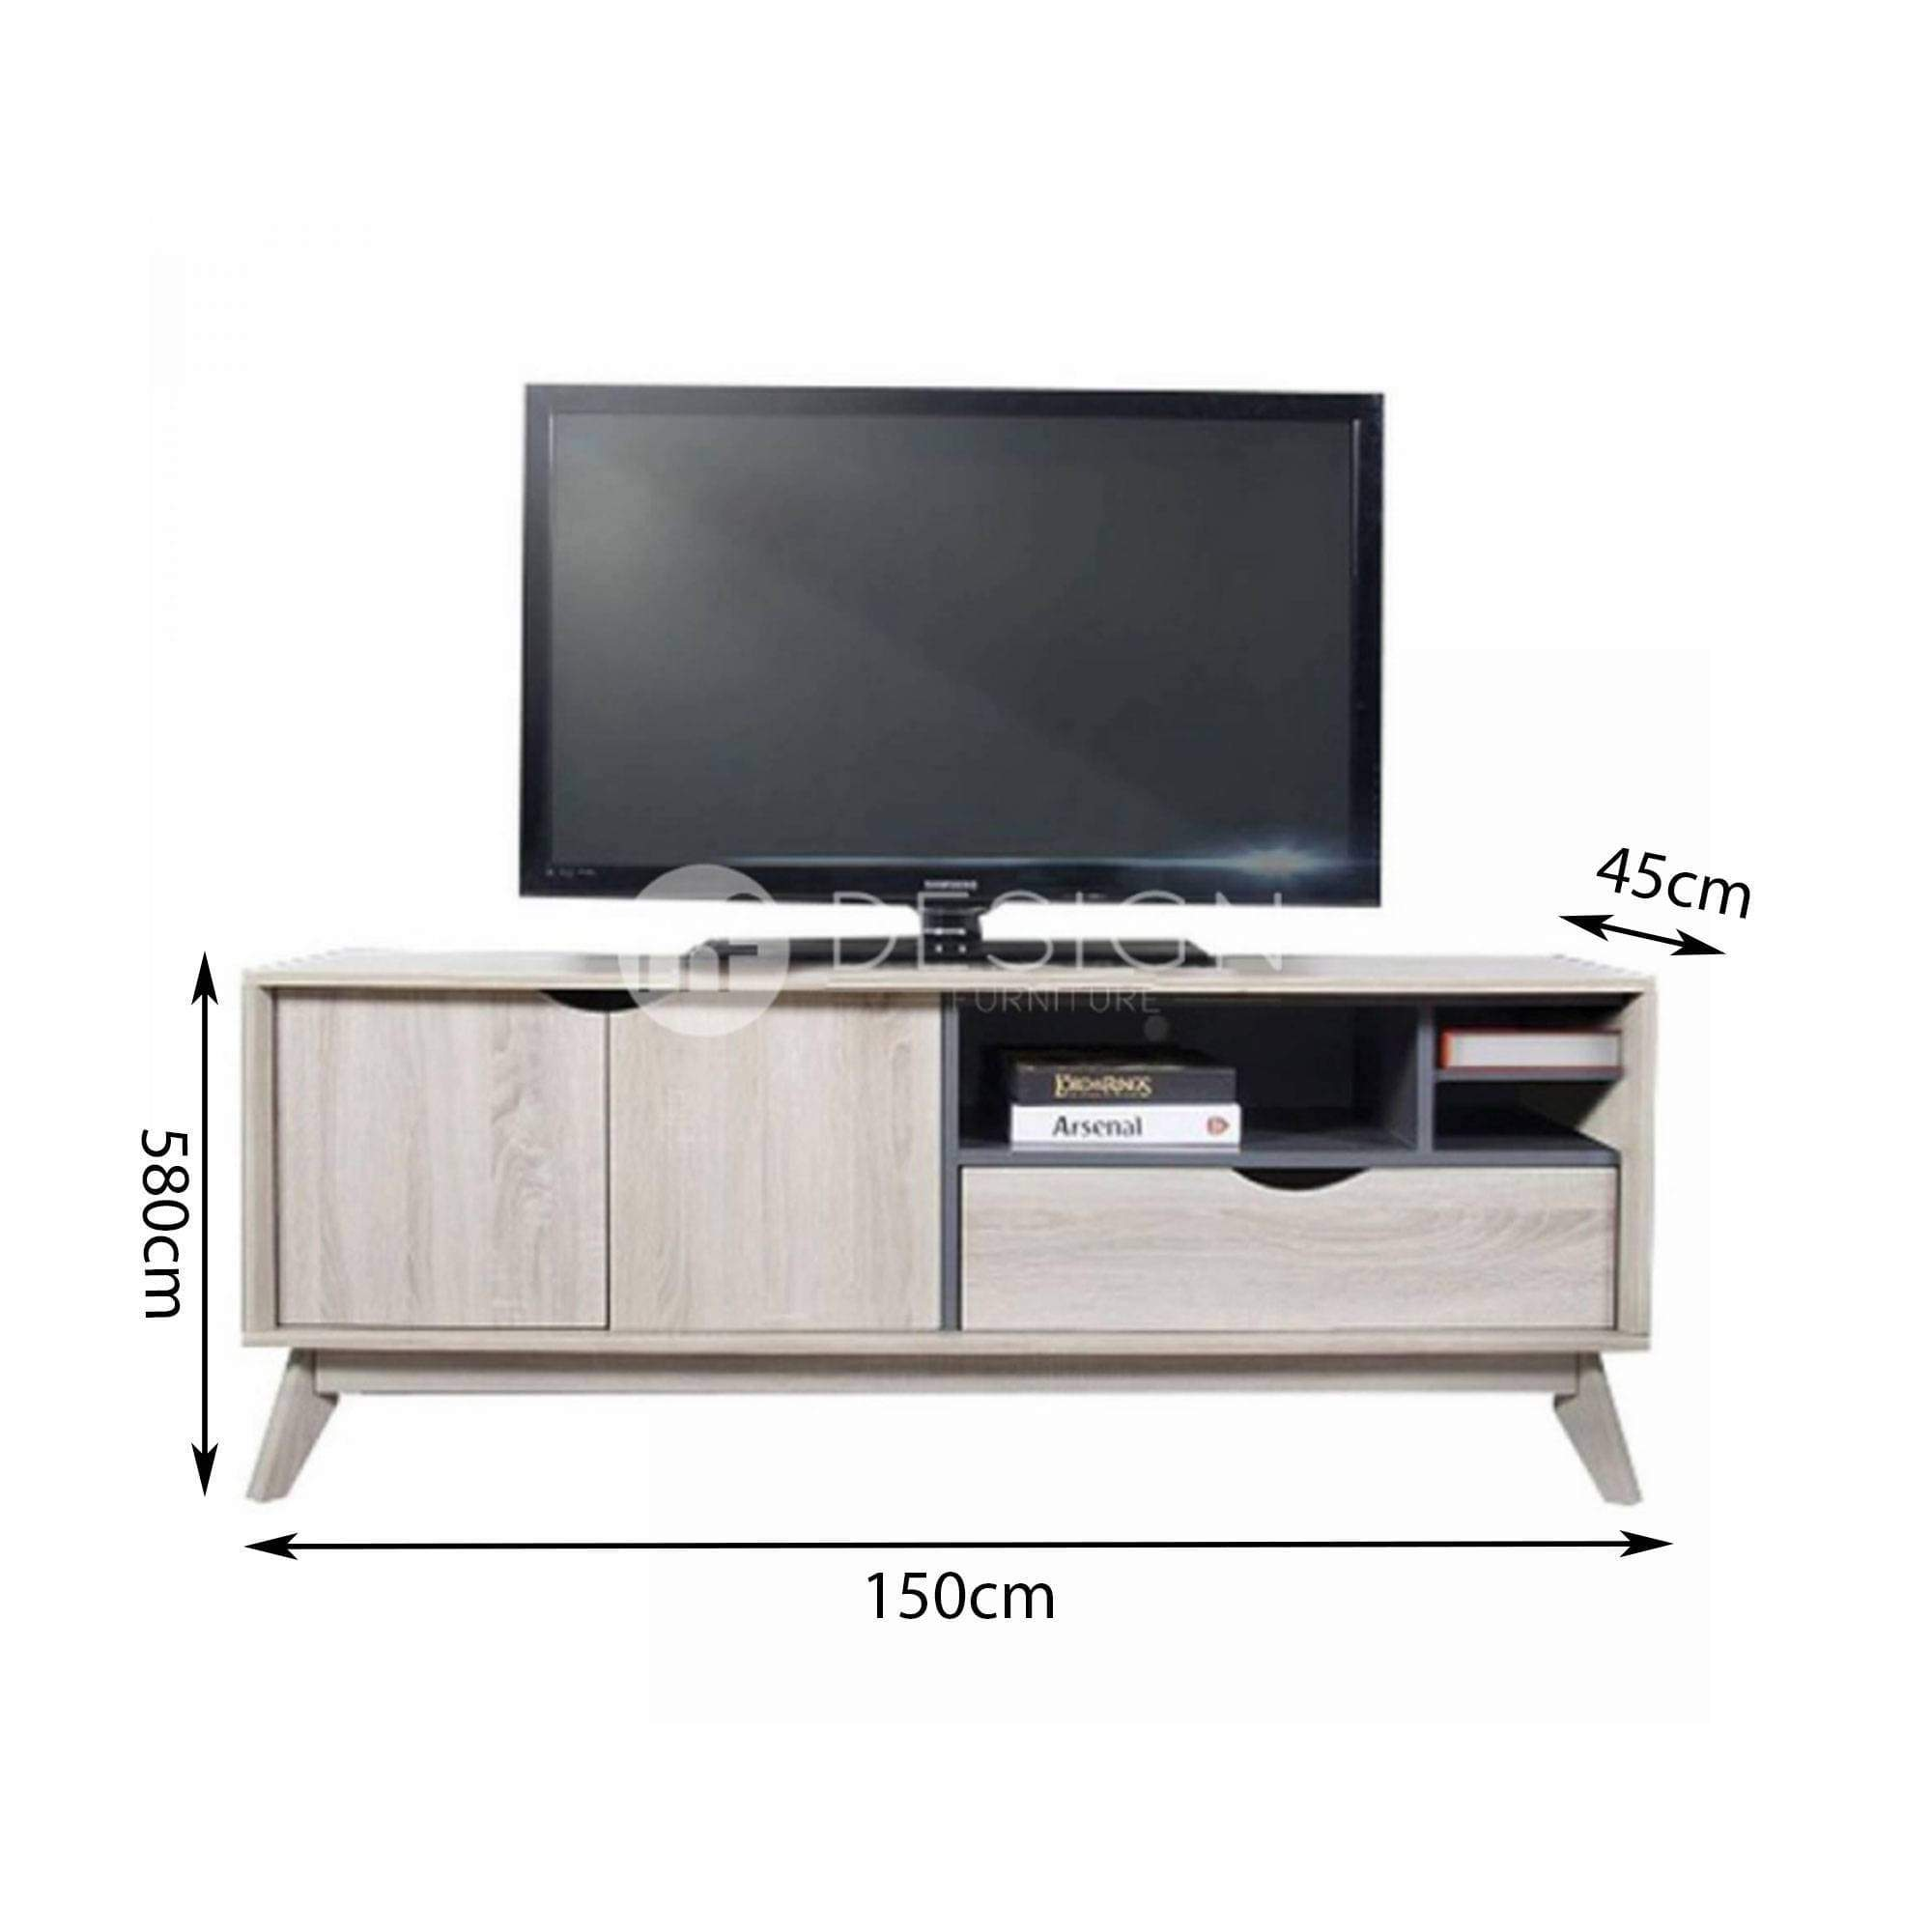 24 FILLO CLEON TV CABINET(5FT)